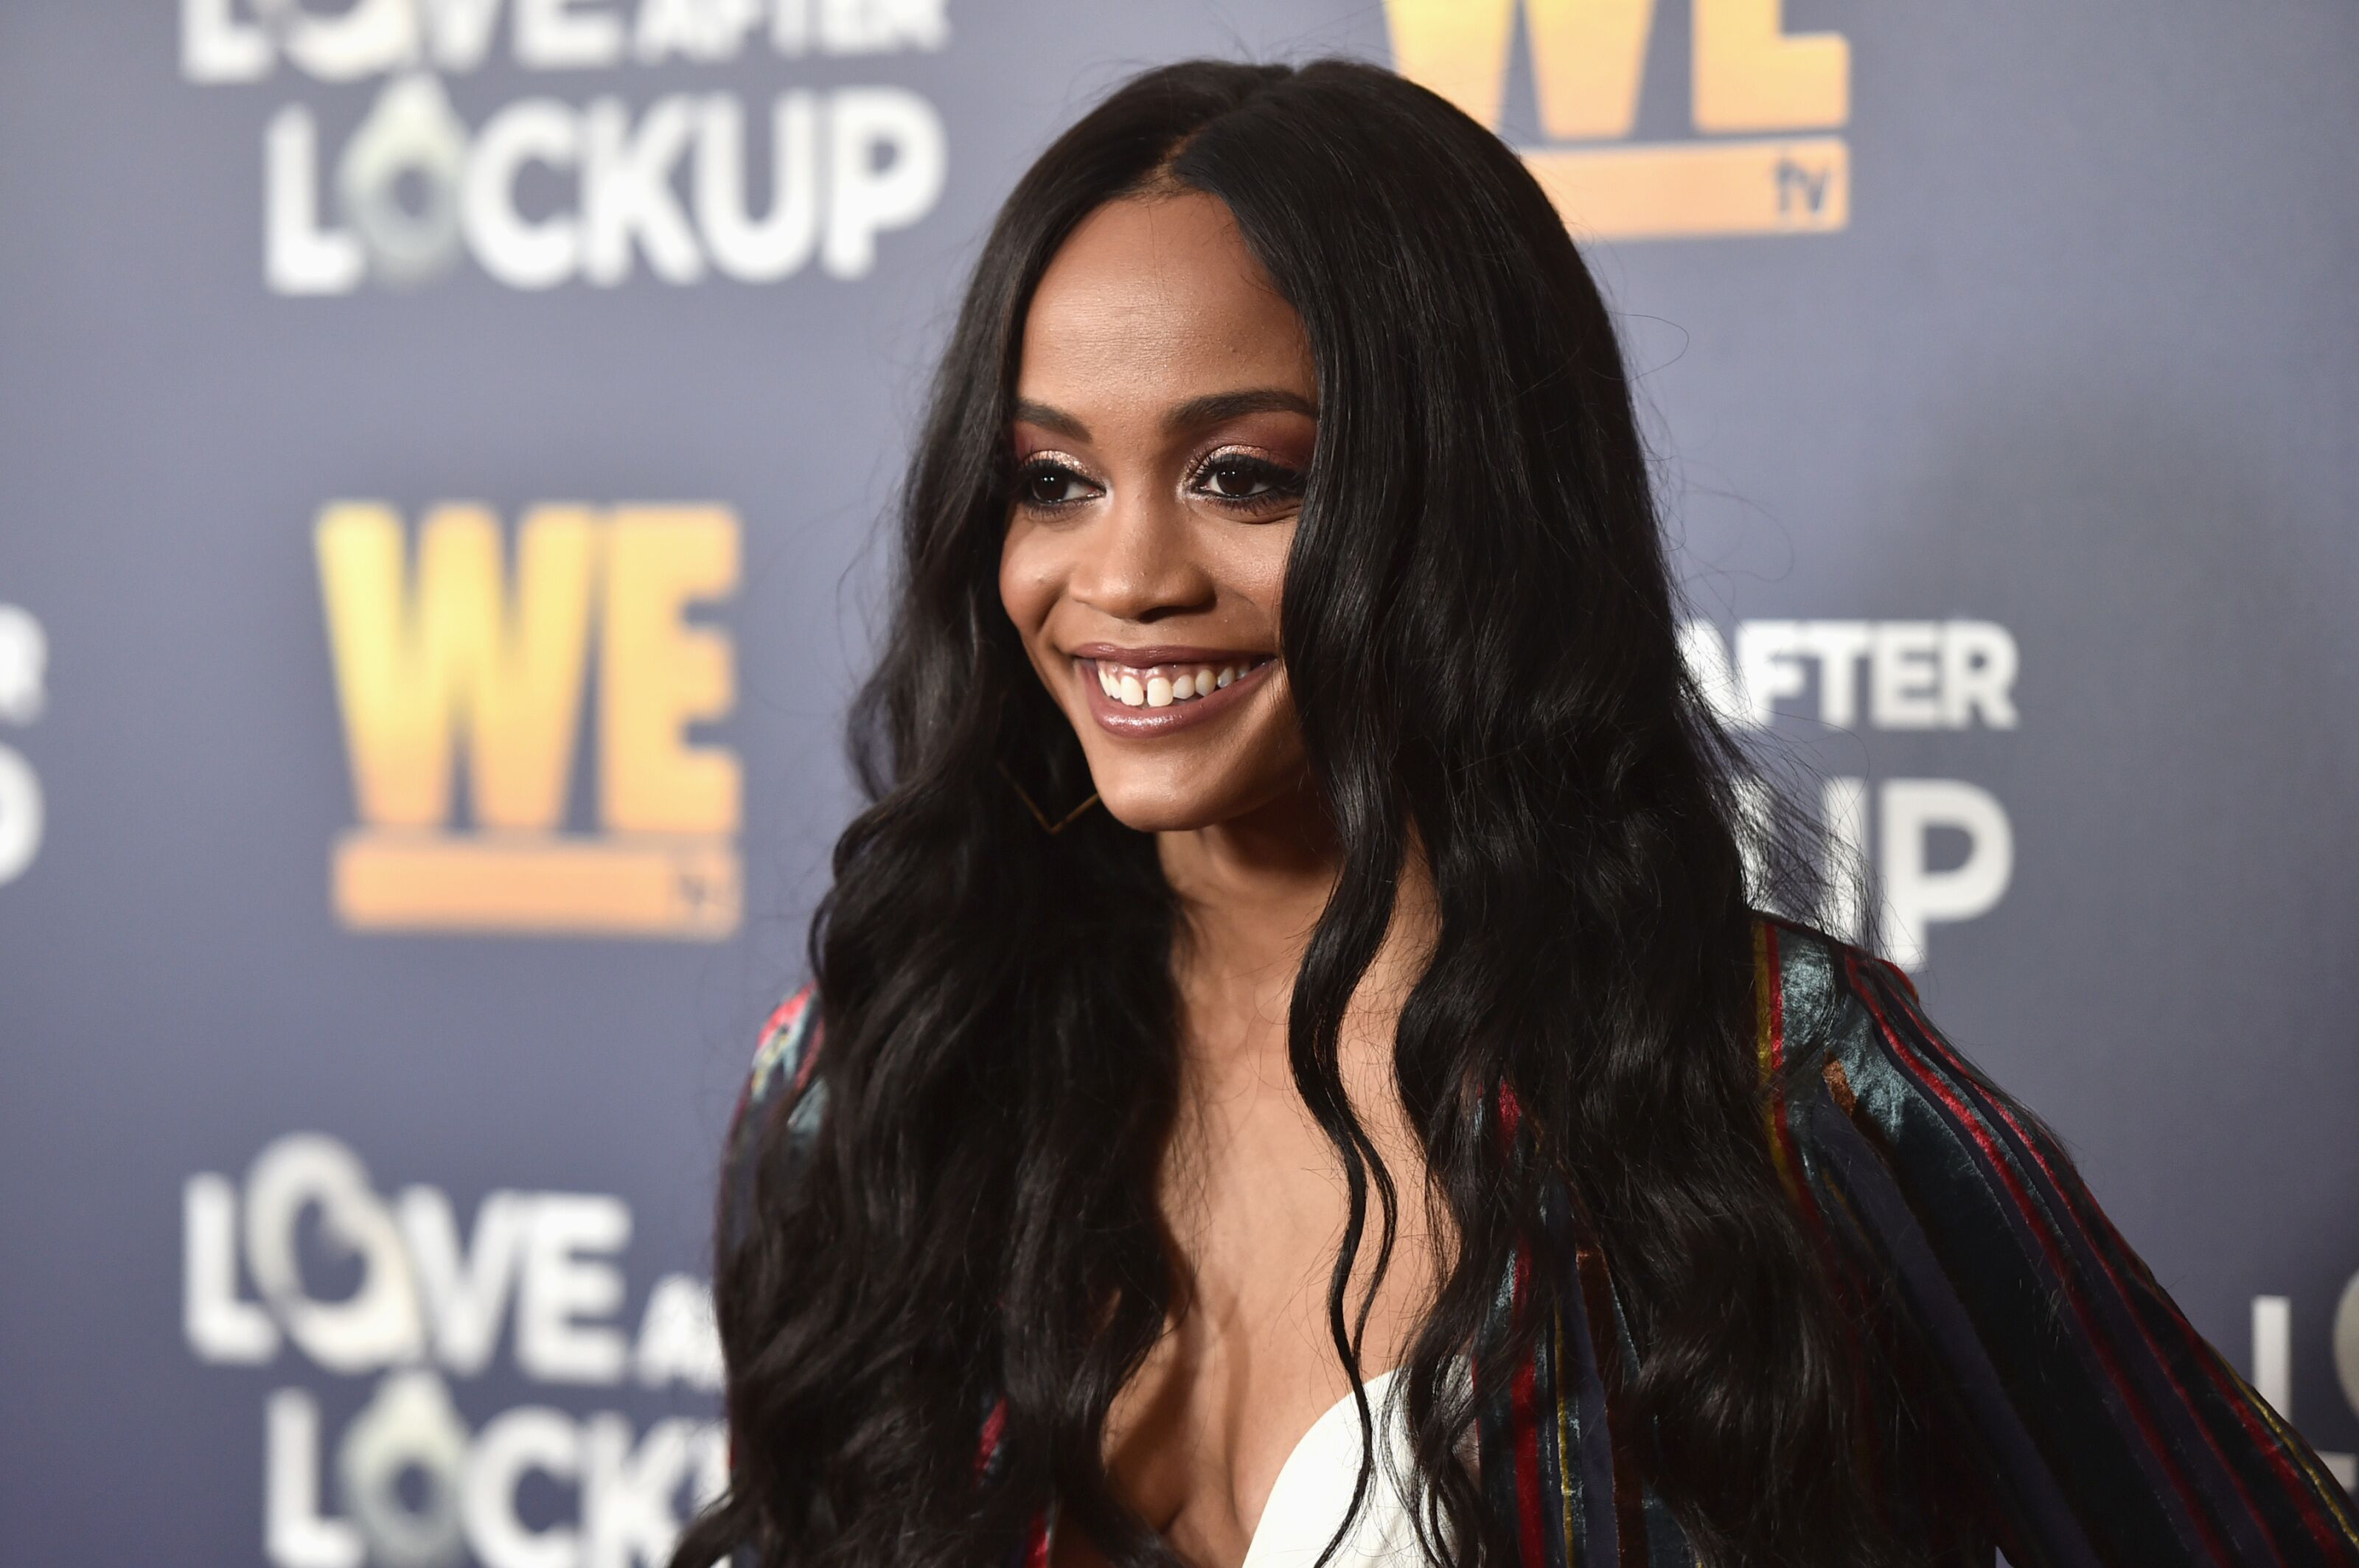 The Raven Gates and Rachel Lindsay feud continues